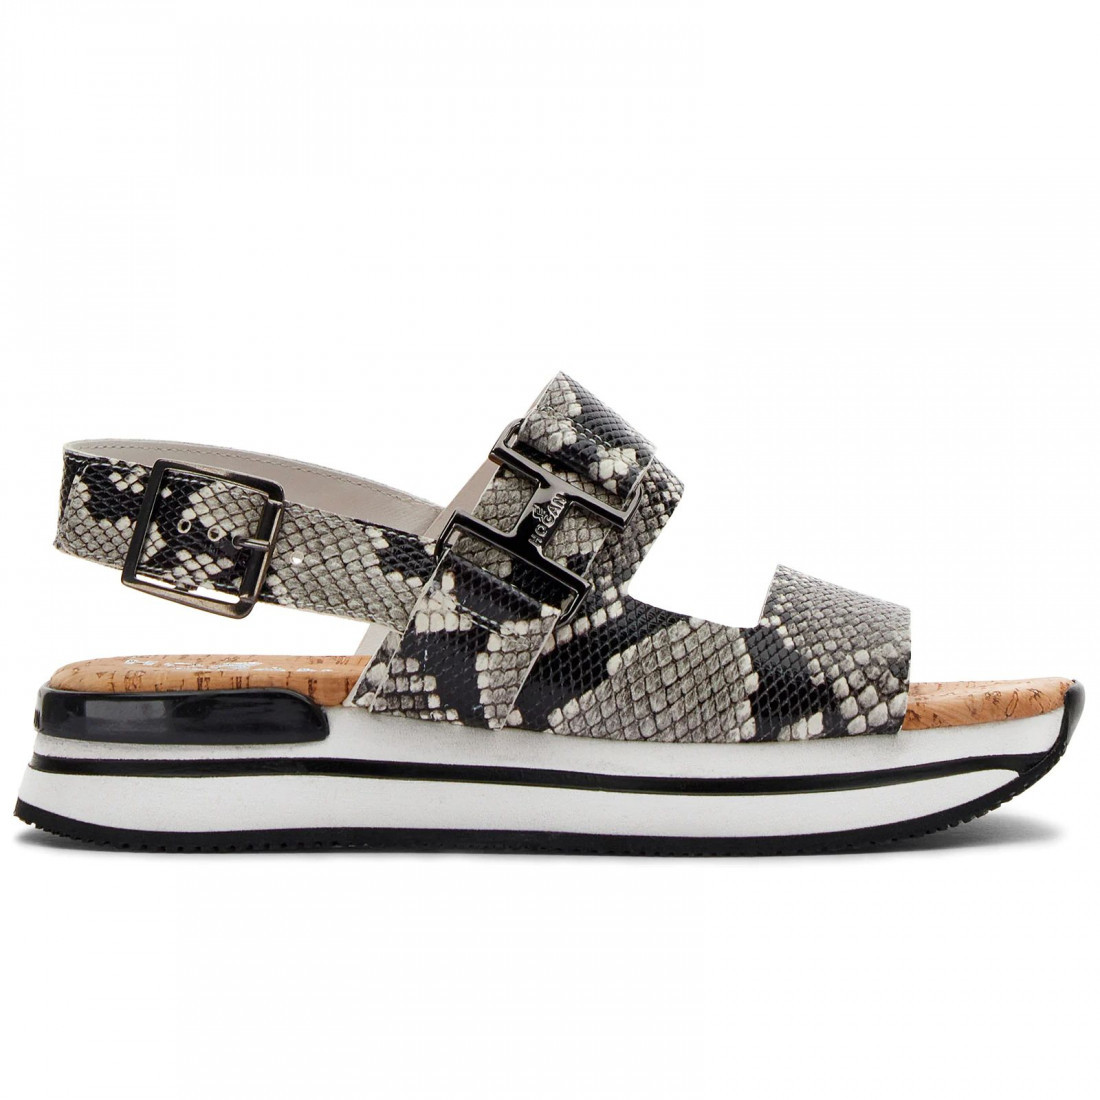 Hogan H222 Sandals with Straps in reptile print leather